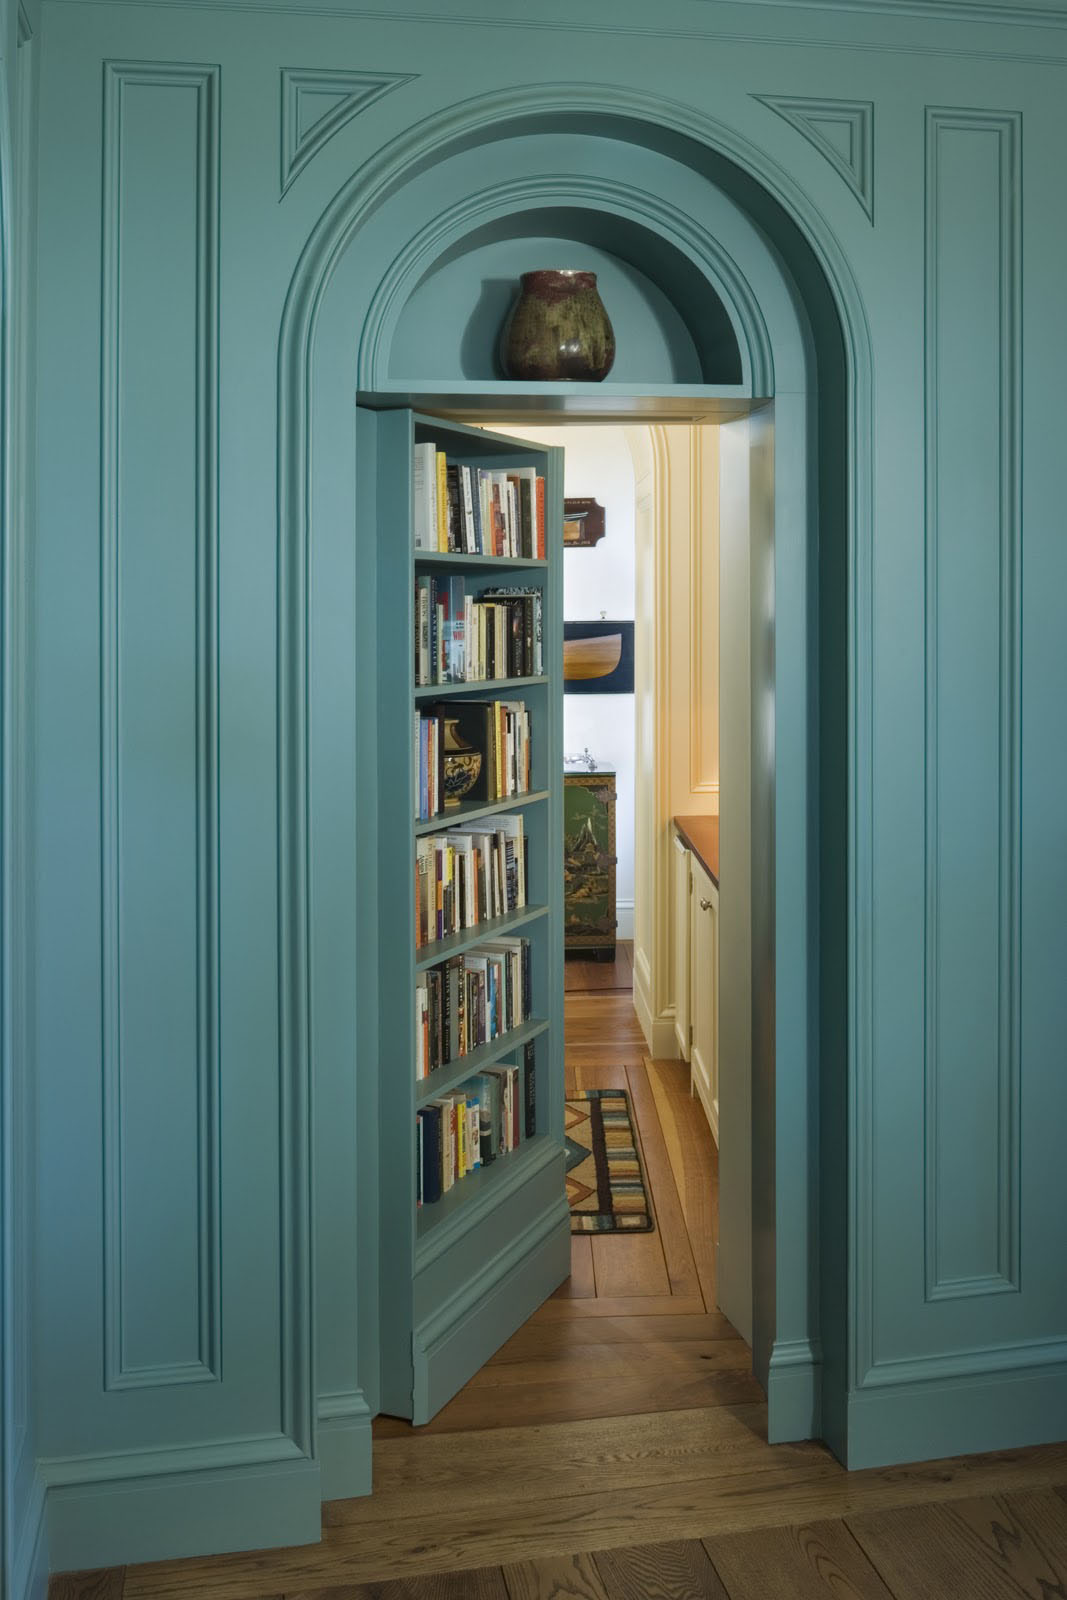 Hidden Door Bookshelf & Hidden Door Bookshelf | iDesignArch | Interior Design Architecture ...